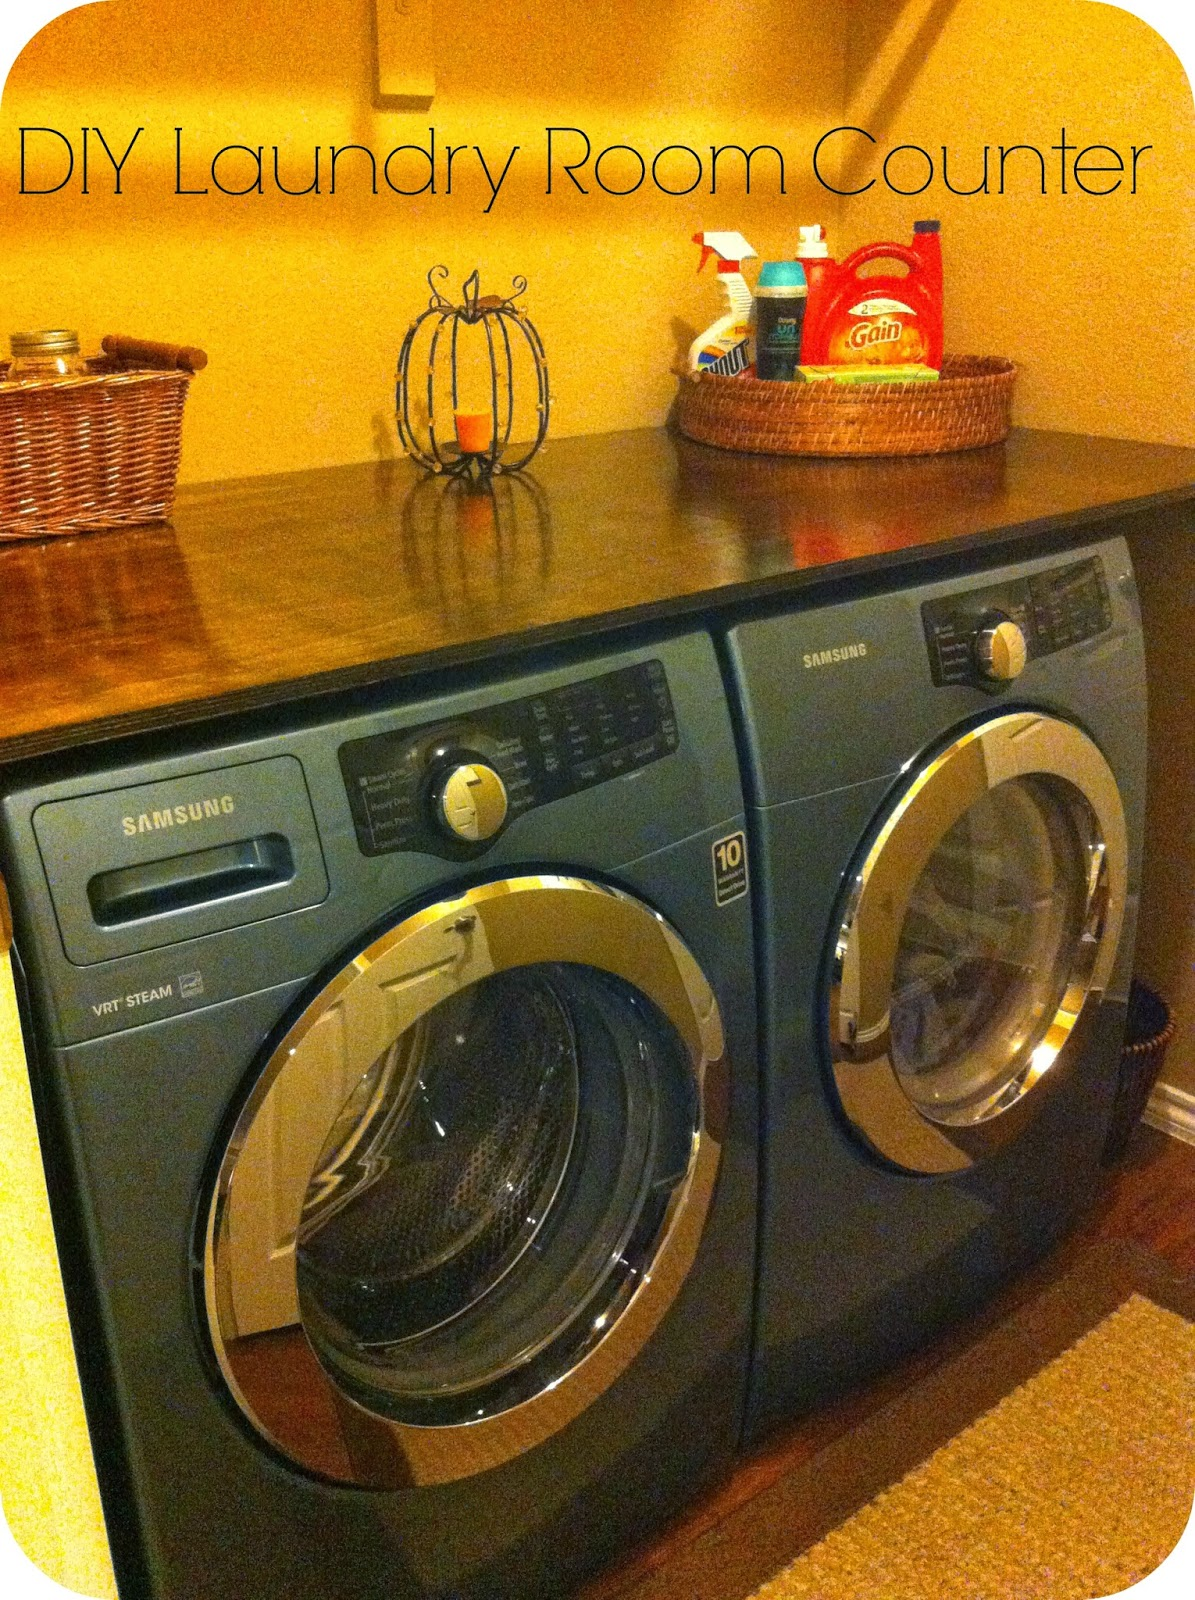 barksdale blessings diy laundry room counter